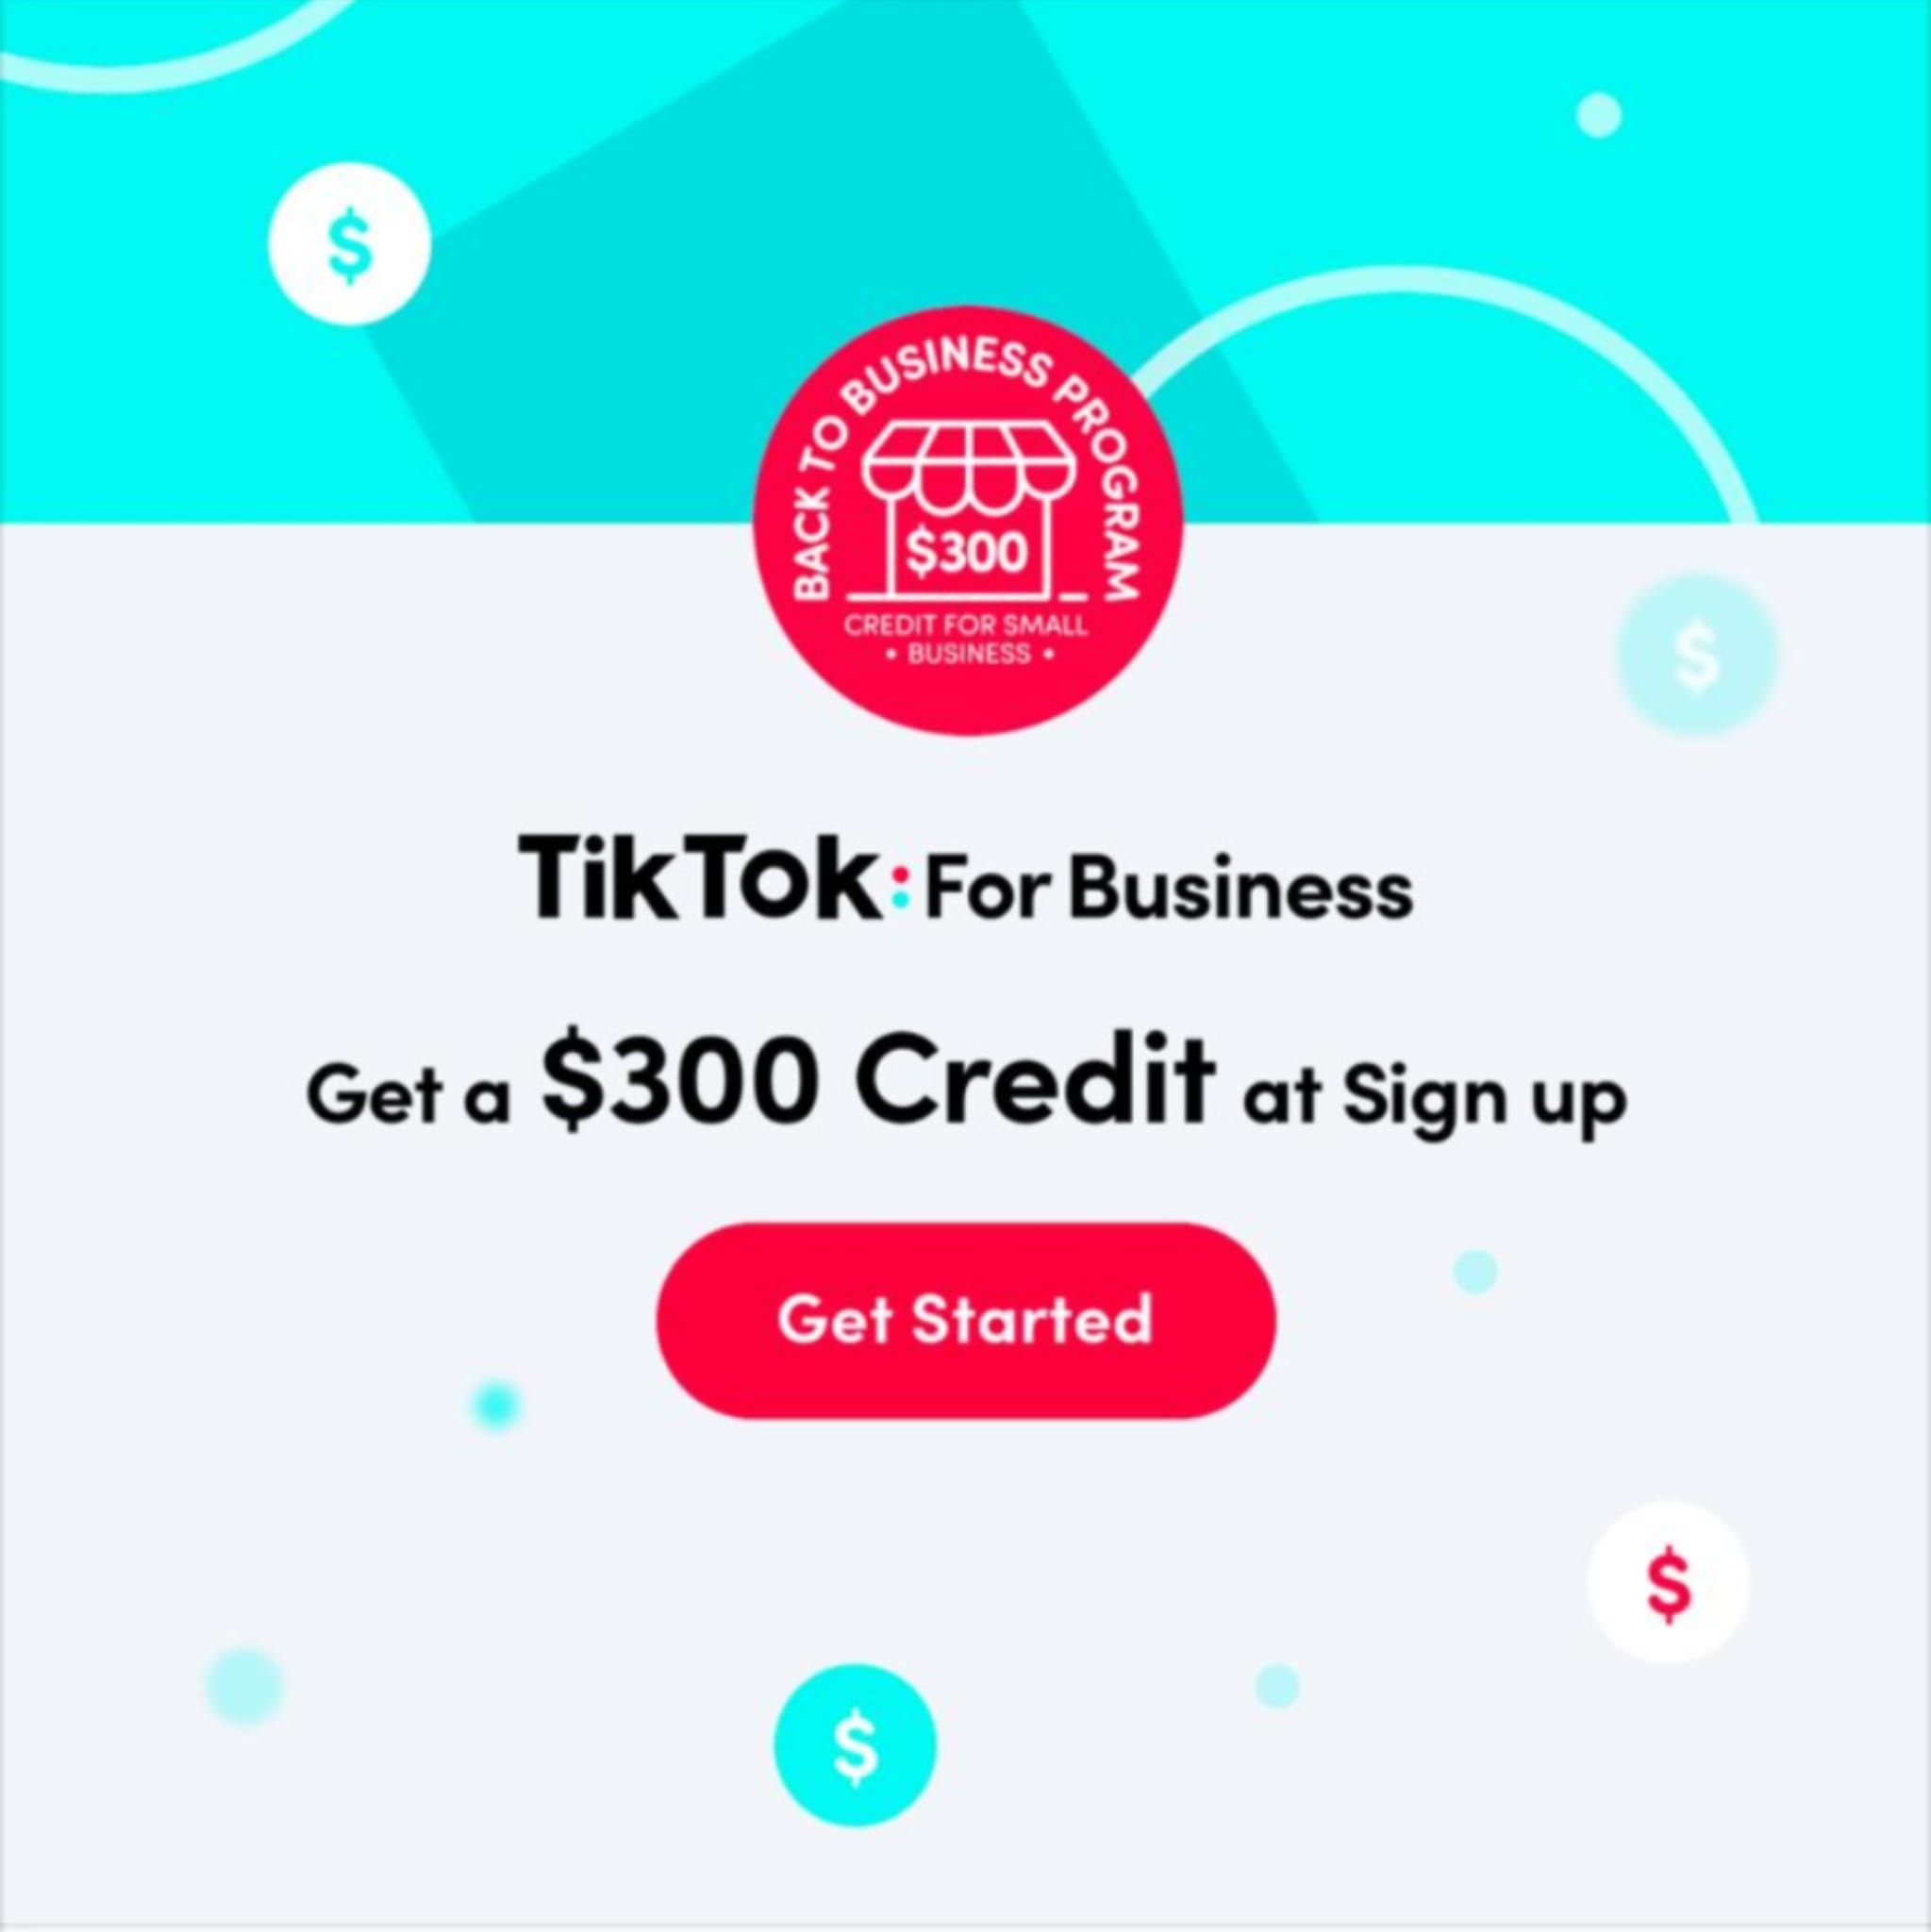 Guess What We Are Giving Into The Tiktok Trend I Mean Who Can Resist Anyways Stay Tun Social Media Marketing Nonprofit Organization Non Profit